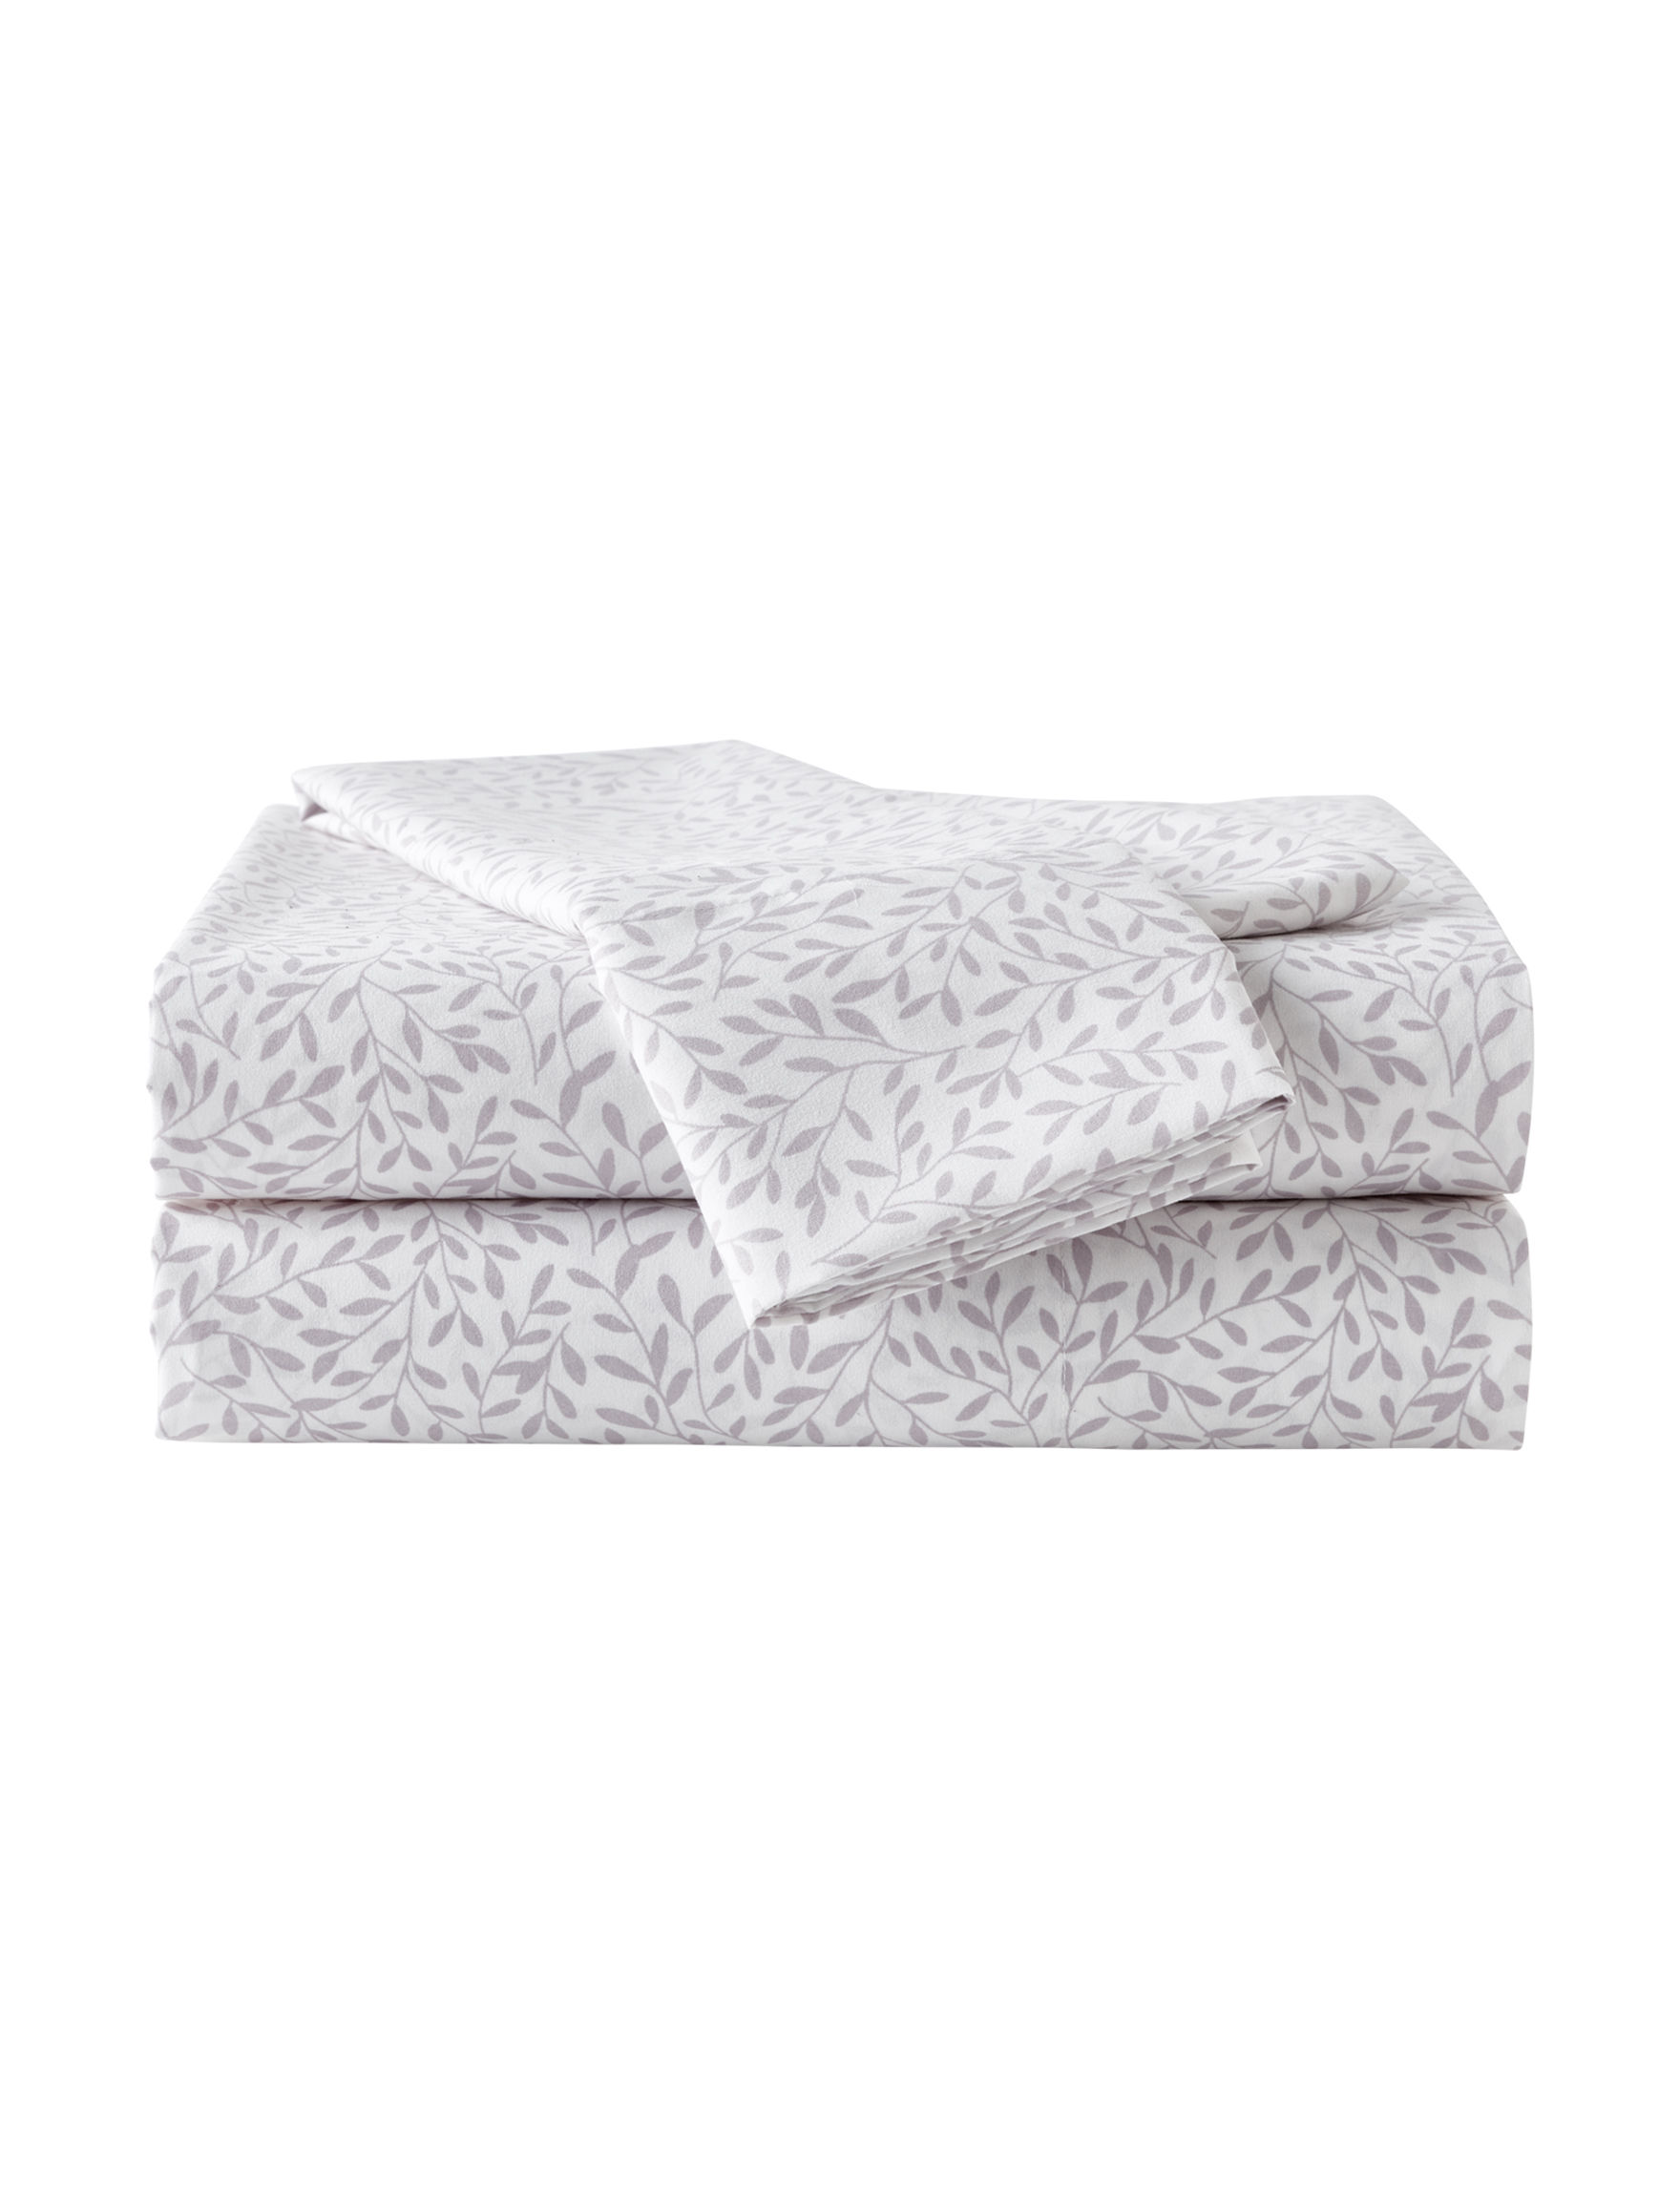 Great Hotels Collection Grey Multi Sheets & Pillowcases